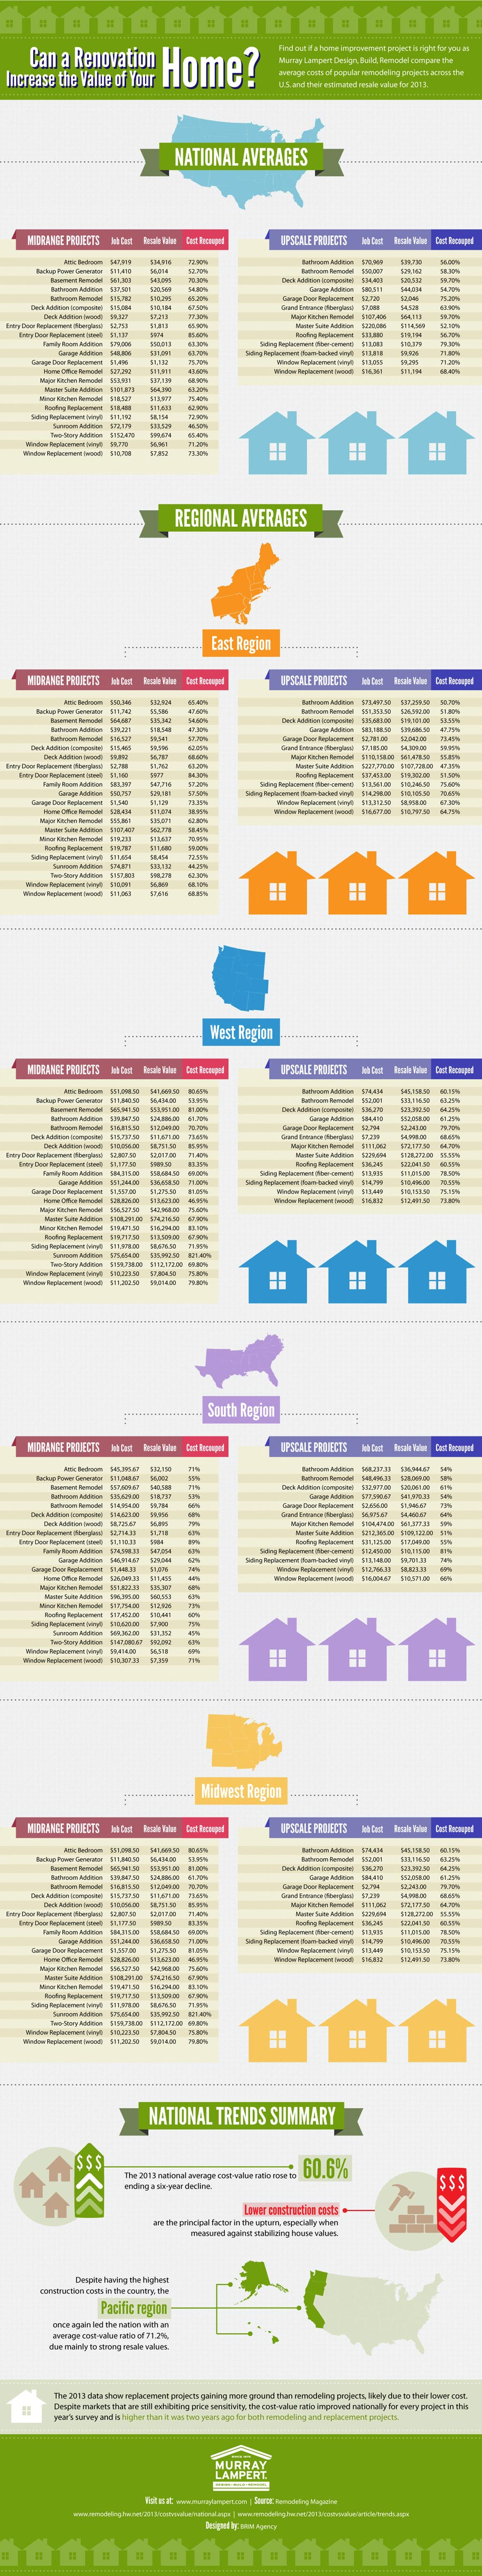 Home Remodeling Cost vs Value-Infographic